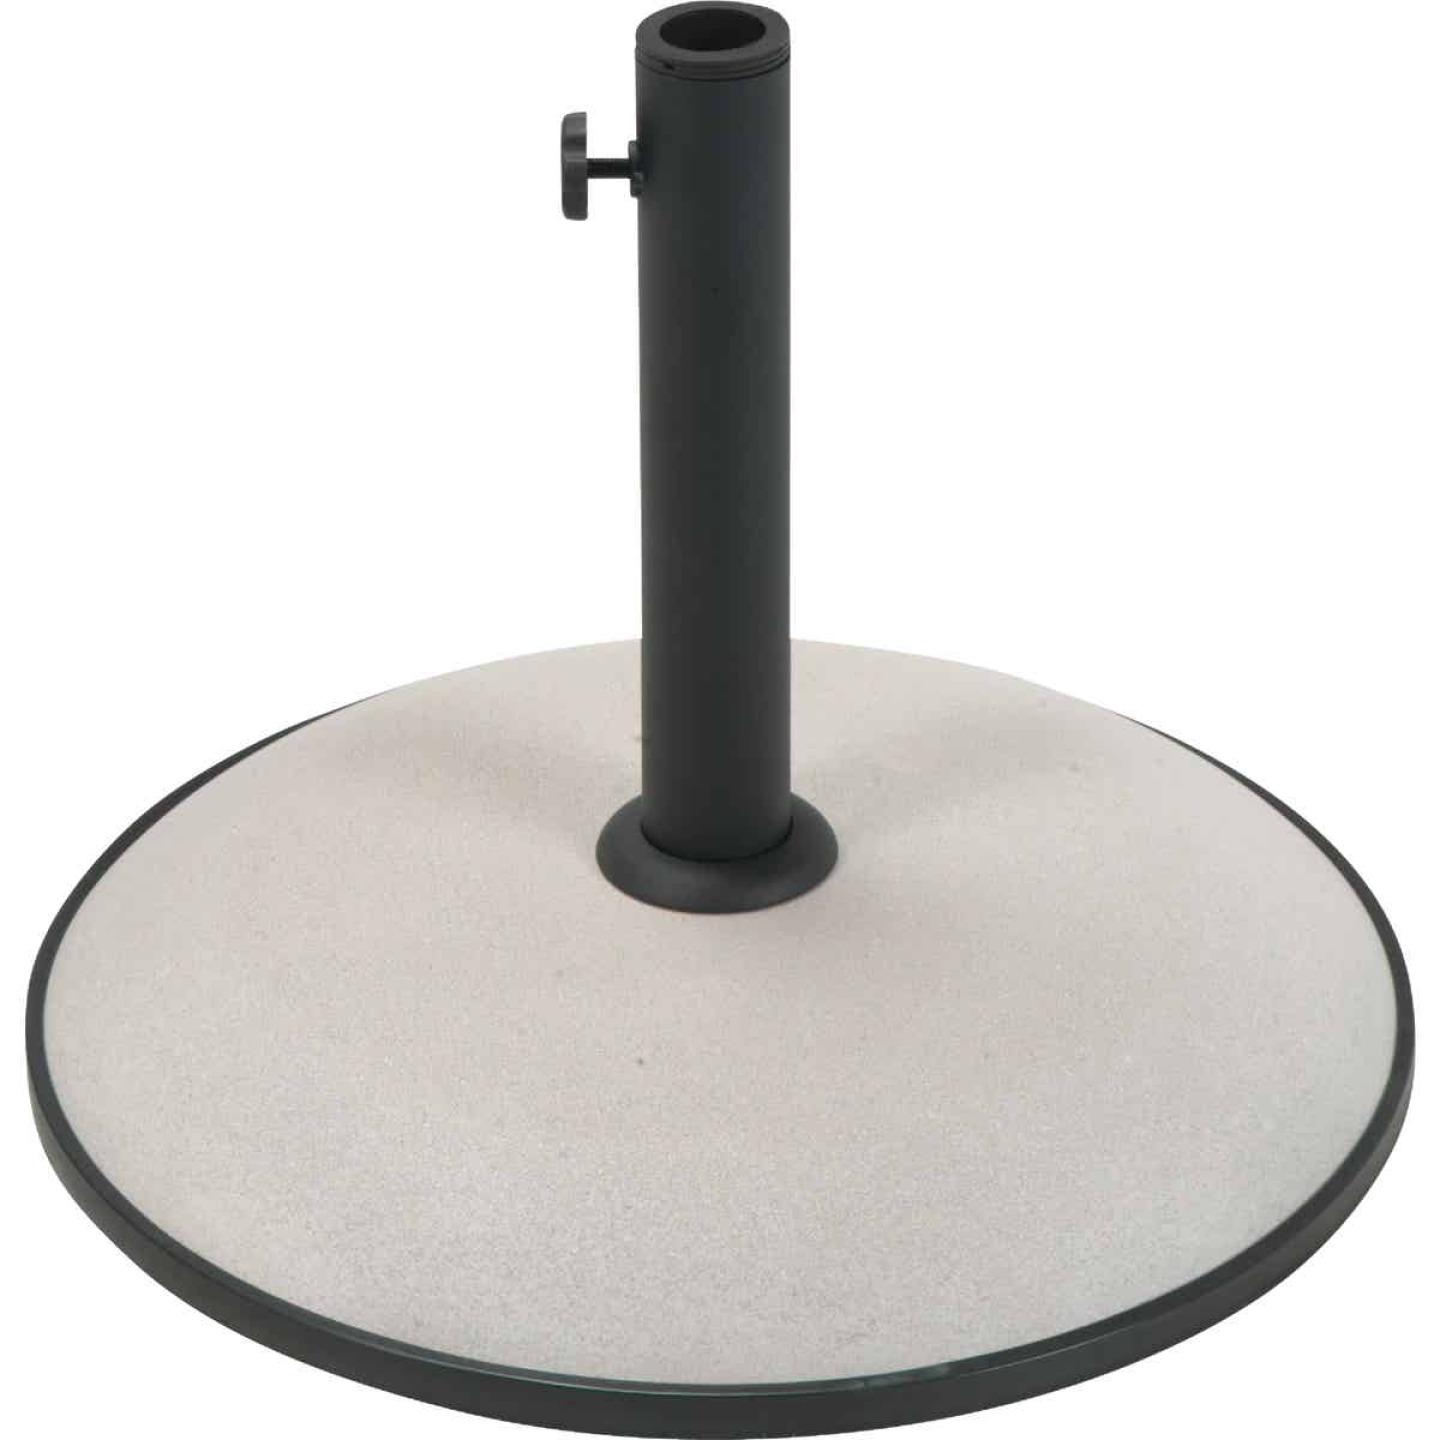 Outdoor Expressions 17 In. Round Tan Concrete Umbrella Base Image 1